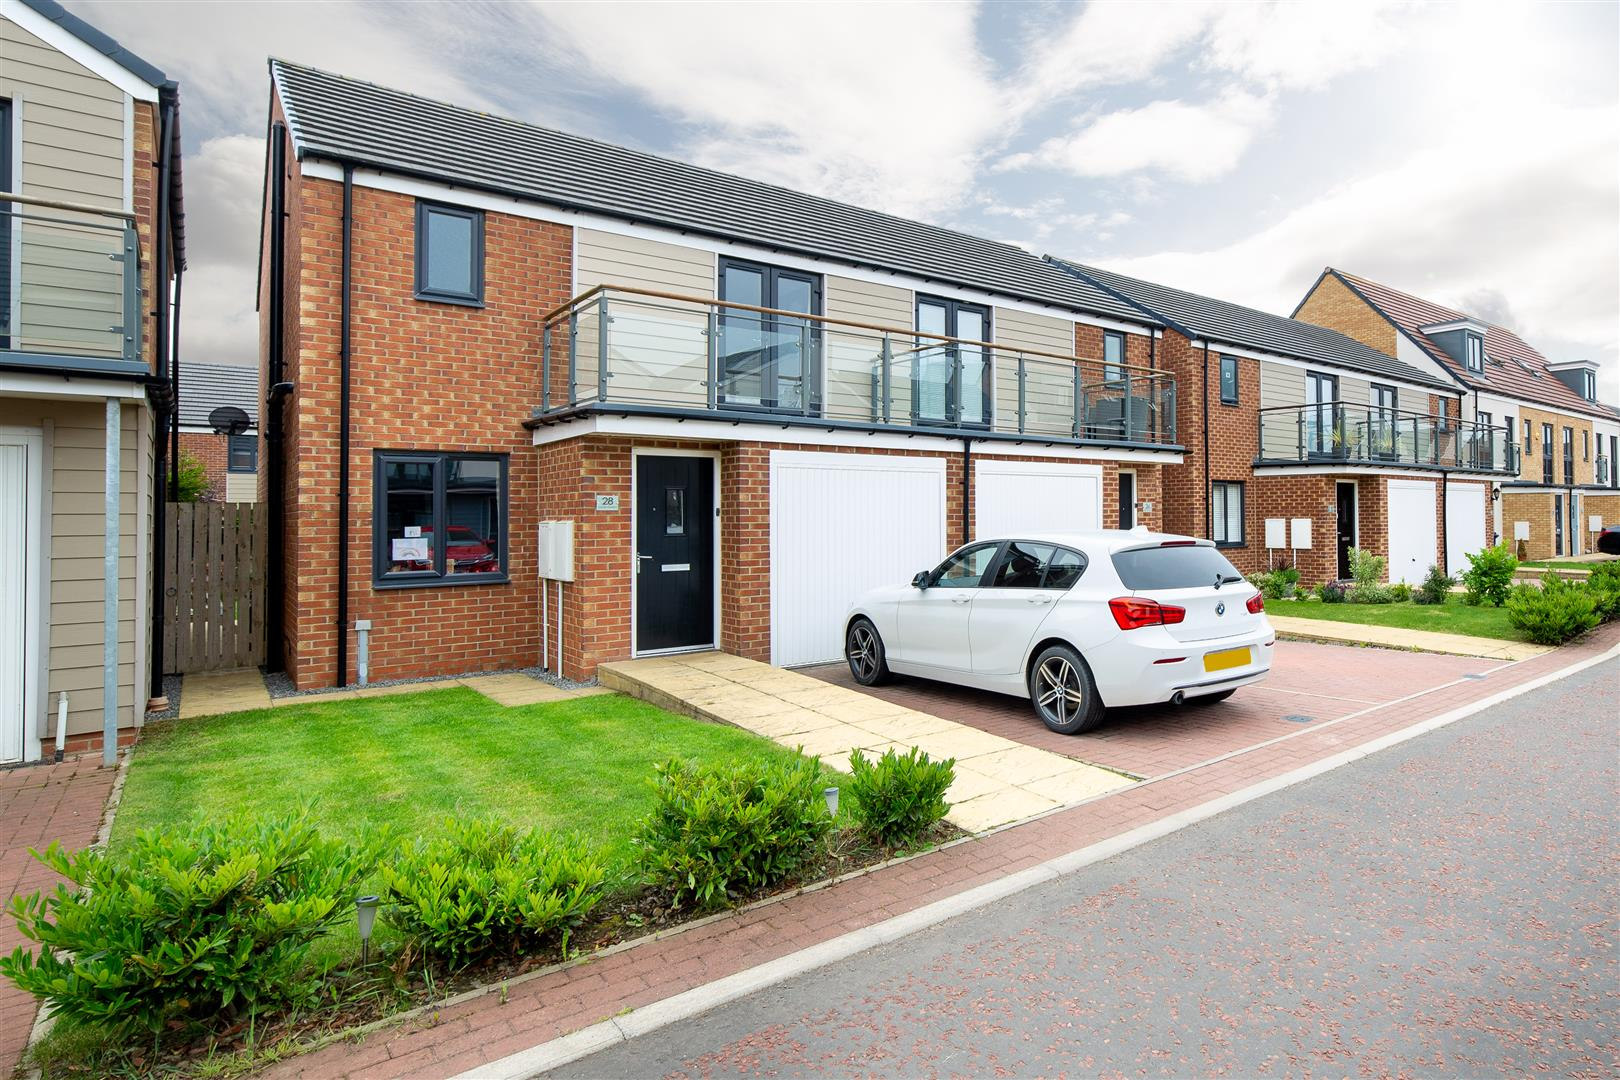 3 bed semi-detached house for sale in Newcastle Upon Tyne, NE13 9DN  - Property Image 1